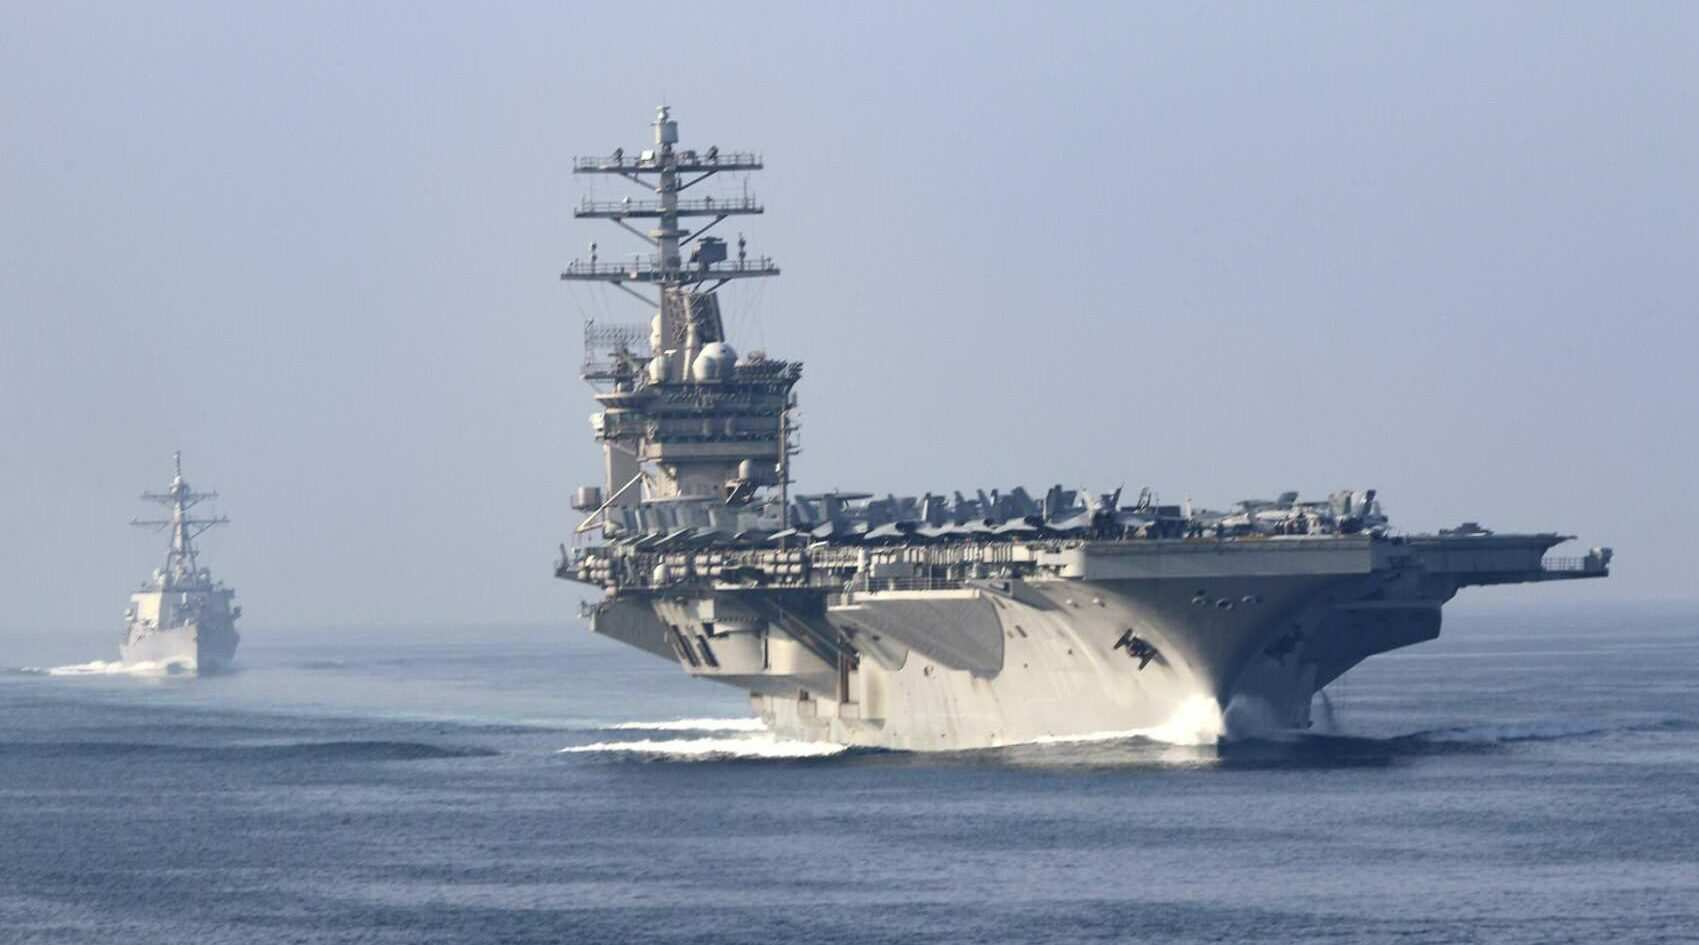 Report: Iran fired missiles within 100 miles of USS Nimitz aircraft carrier, within 20 miles of commercial vessel